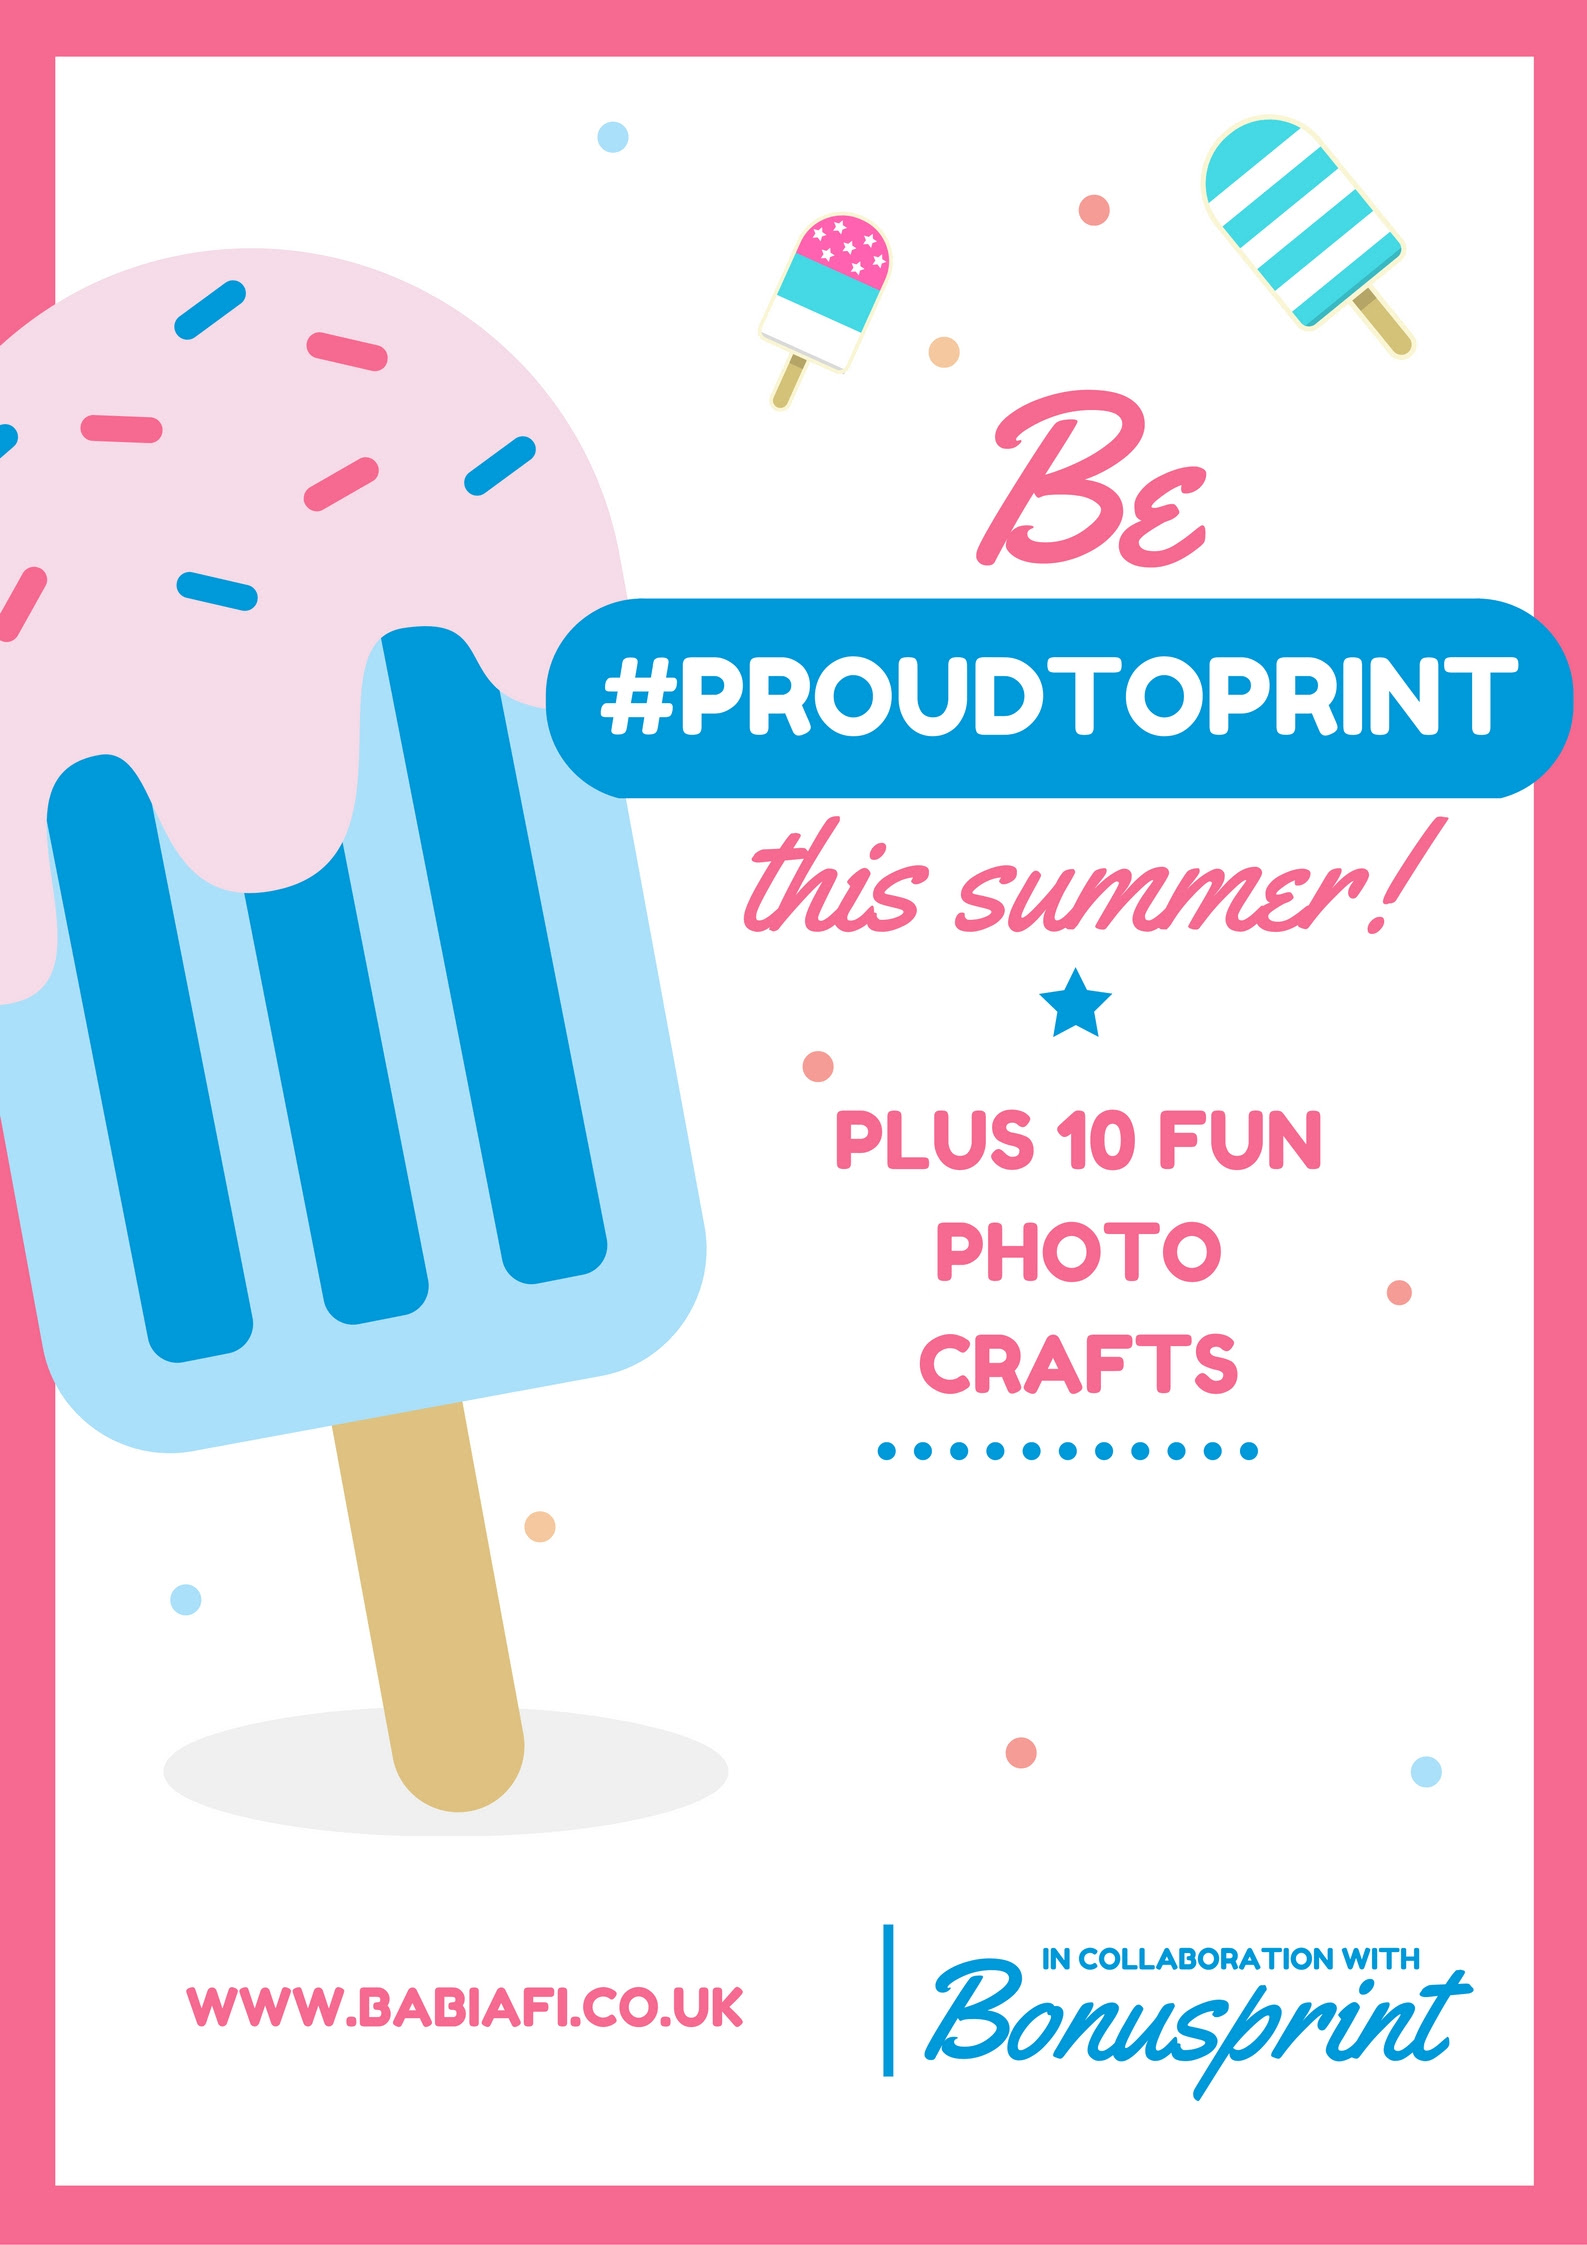 Be #proudtoprint this summer!